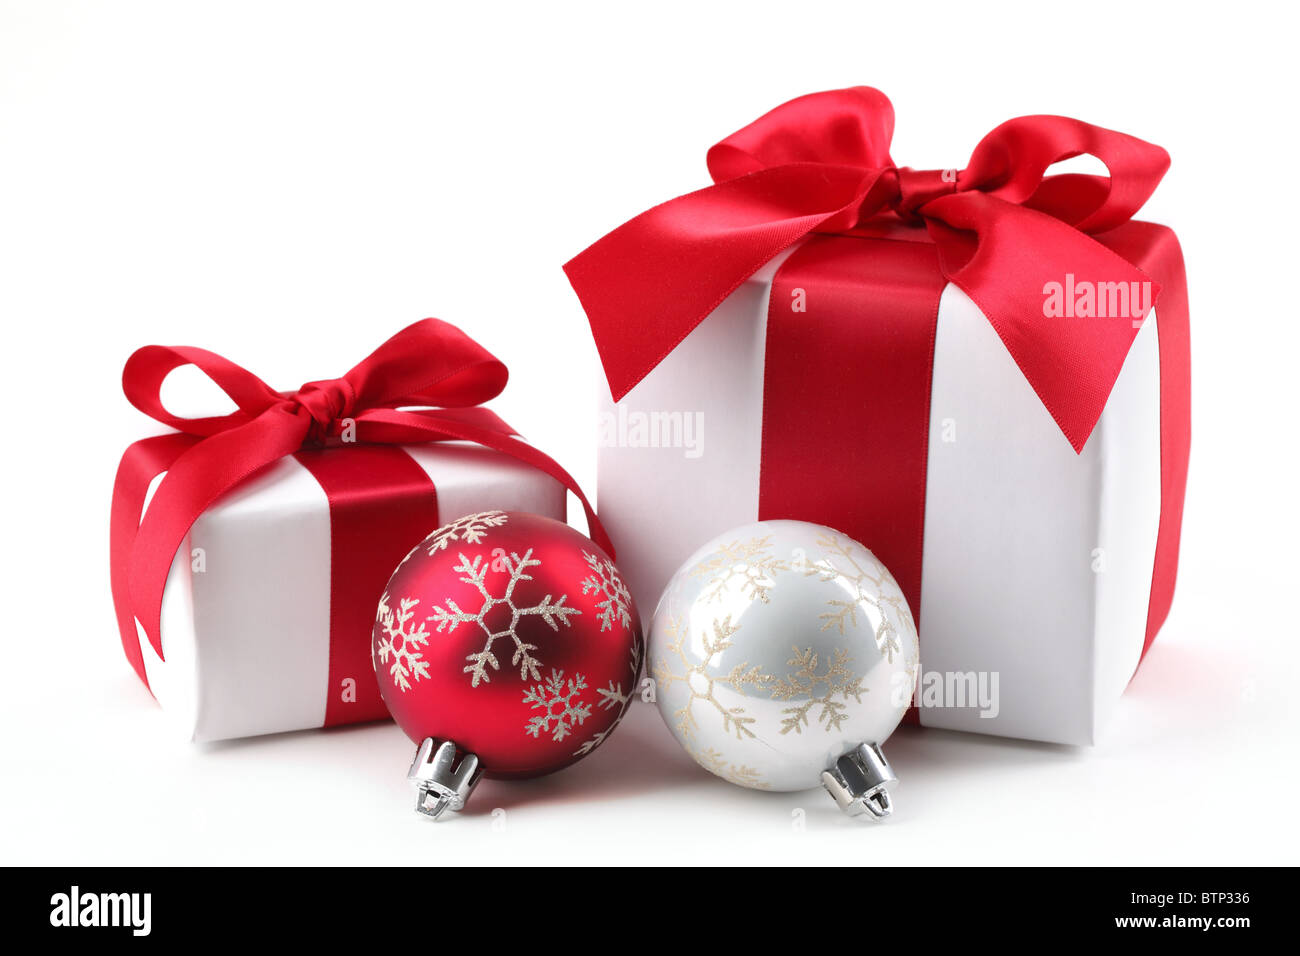 Christmas Gift Box with bauble. - Stock Image